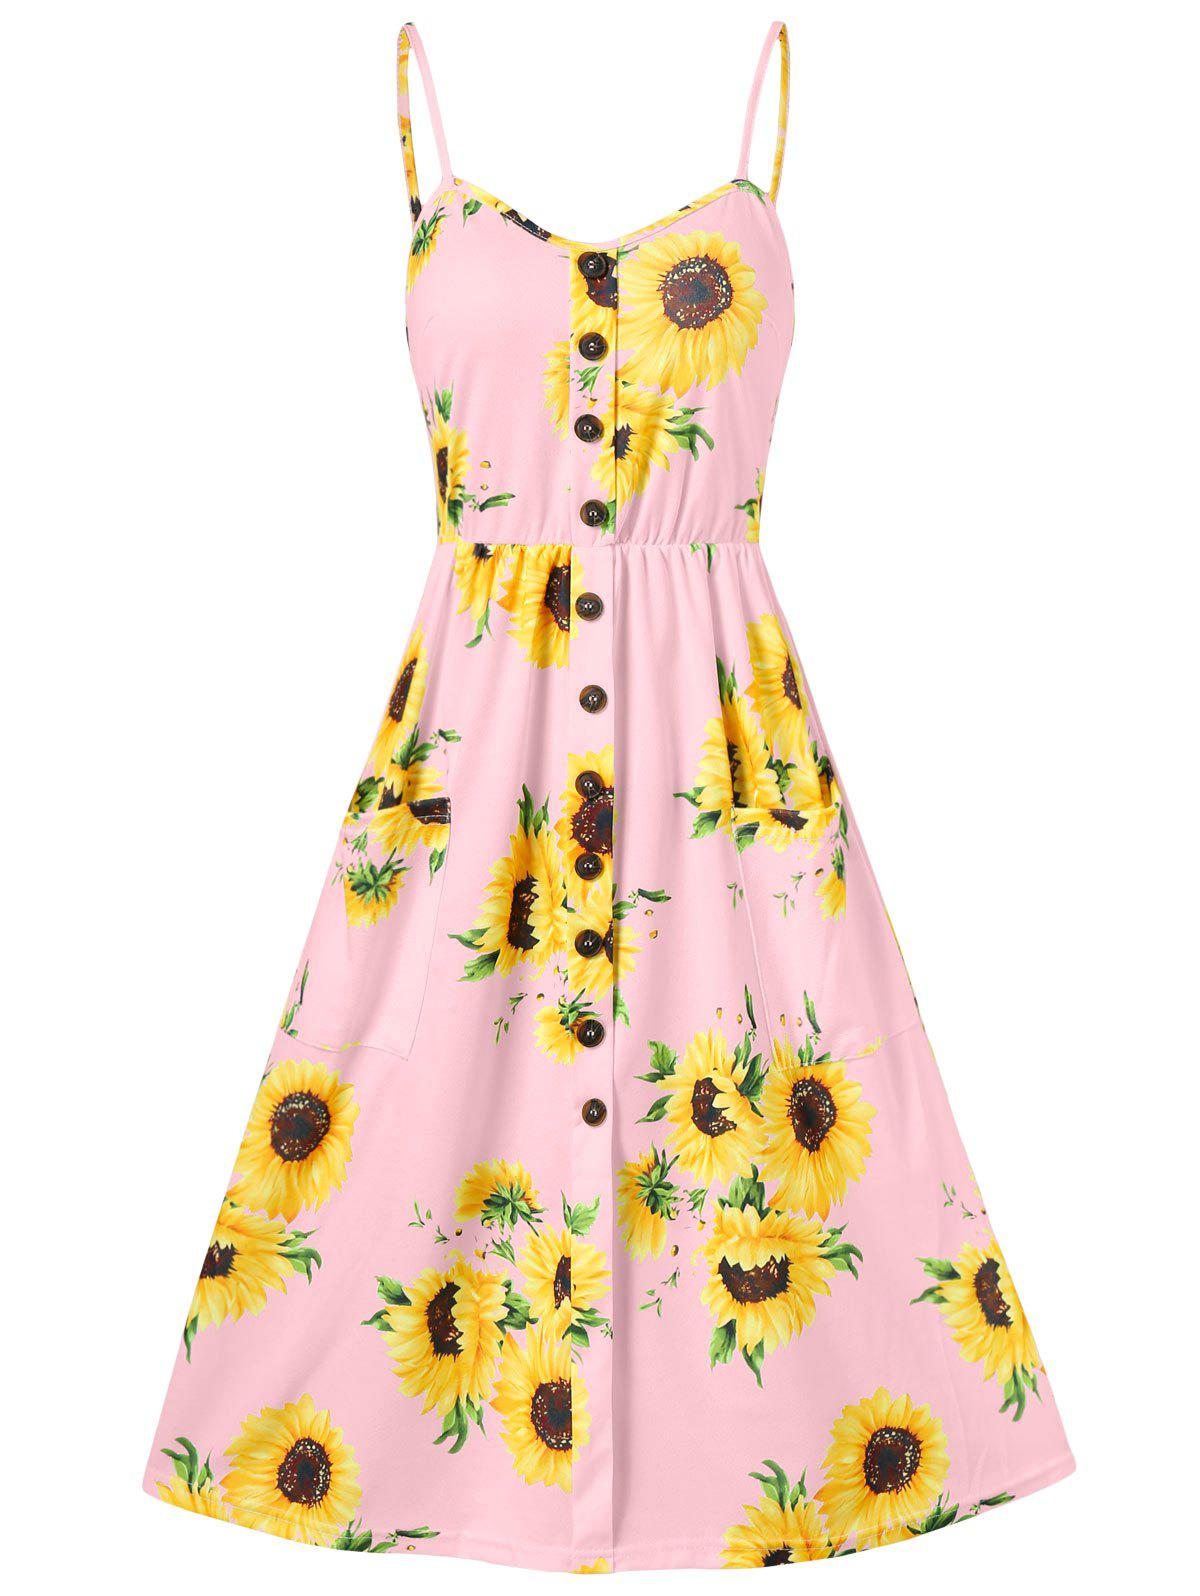 5e08b27040b8 47% OFF] Spaghetti Strap Sunflower Print Buttoned Mini Dress | Rosegal